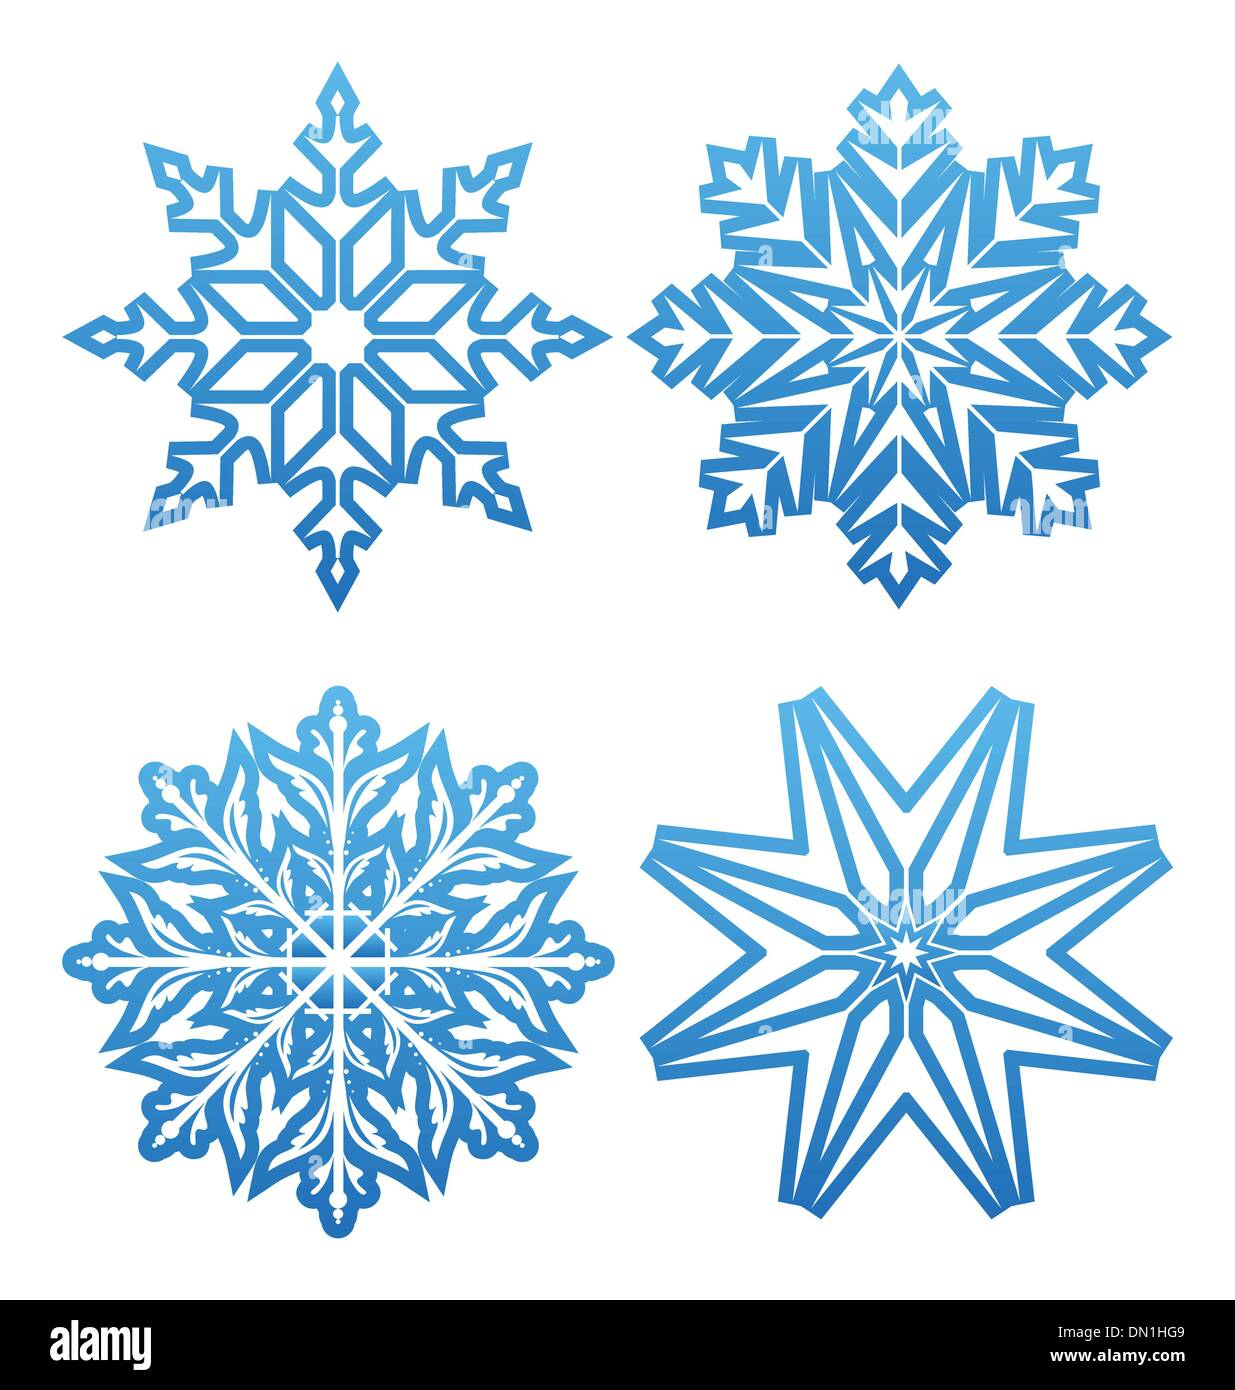 Set of variation snowflakes isolated - Stock Image